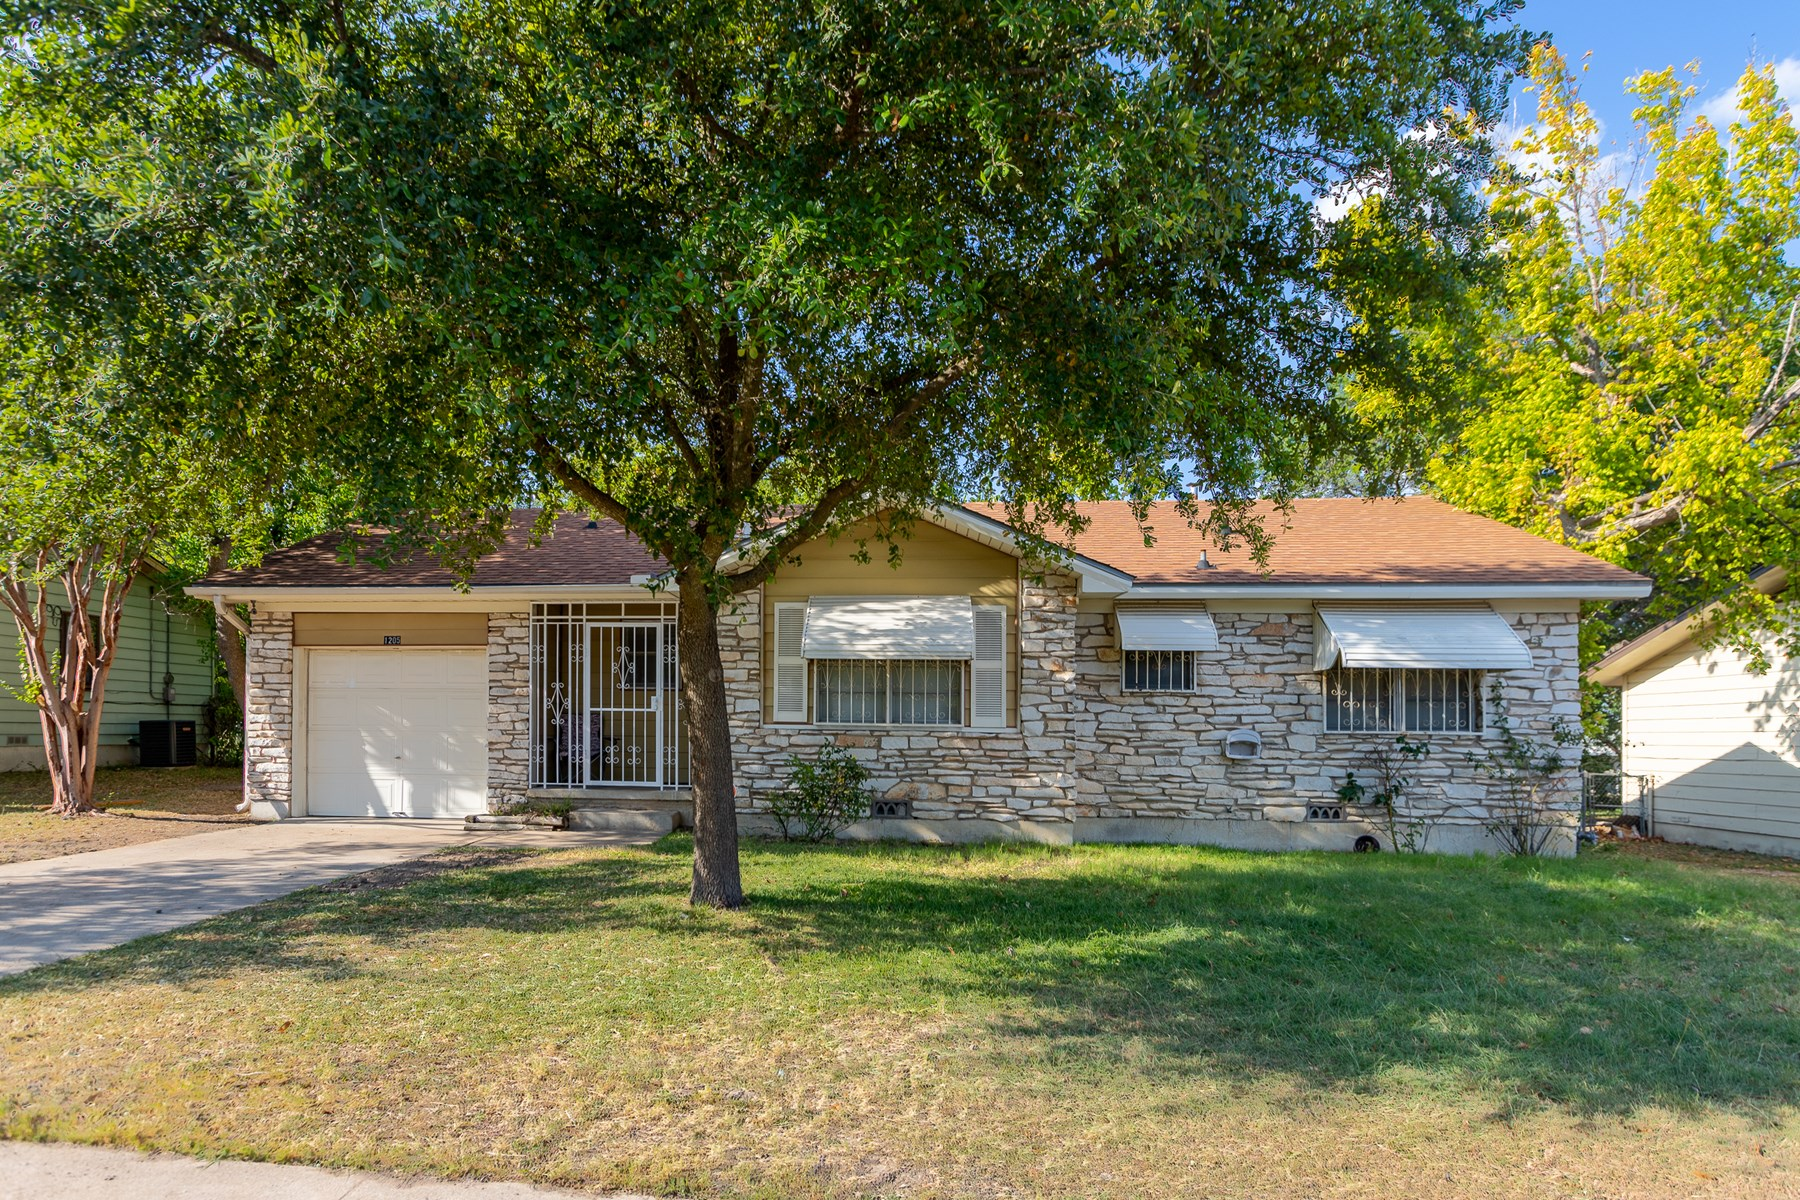 3 Bed For Sale Killeen Texas UNDER $100,000!!!!!